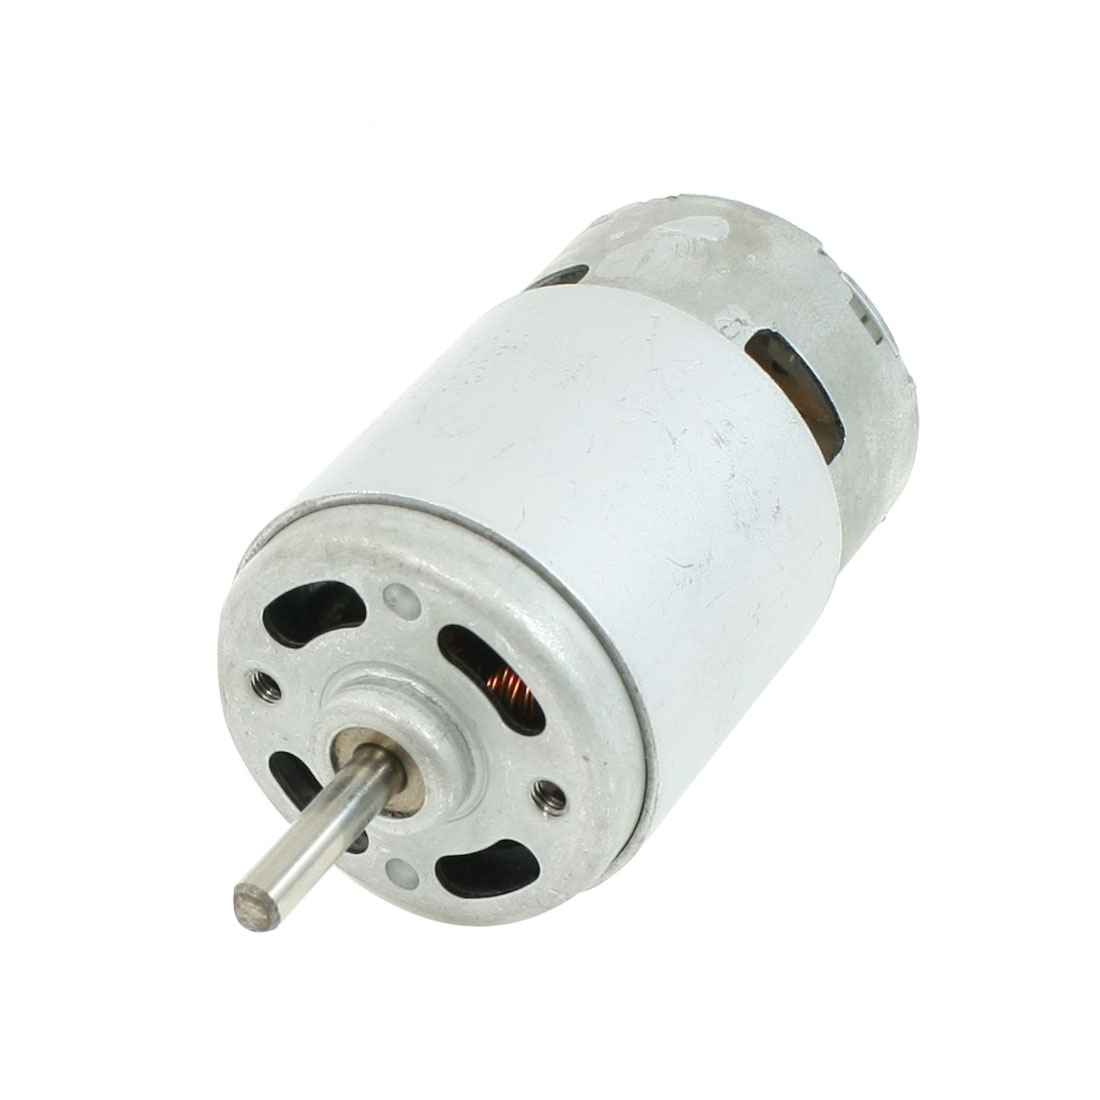 5mm Shaft Dia Body 2P Electrical Machine Motor DC 12V 12000RPM